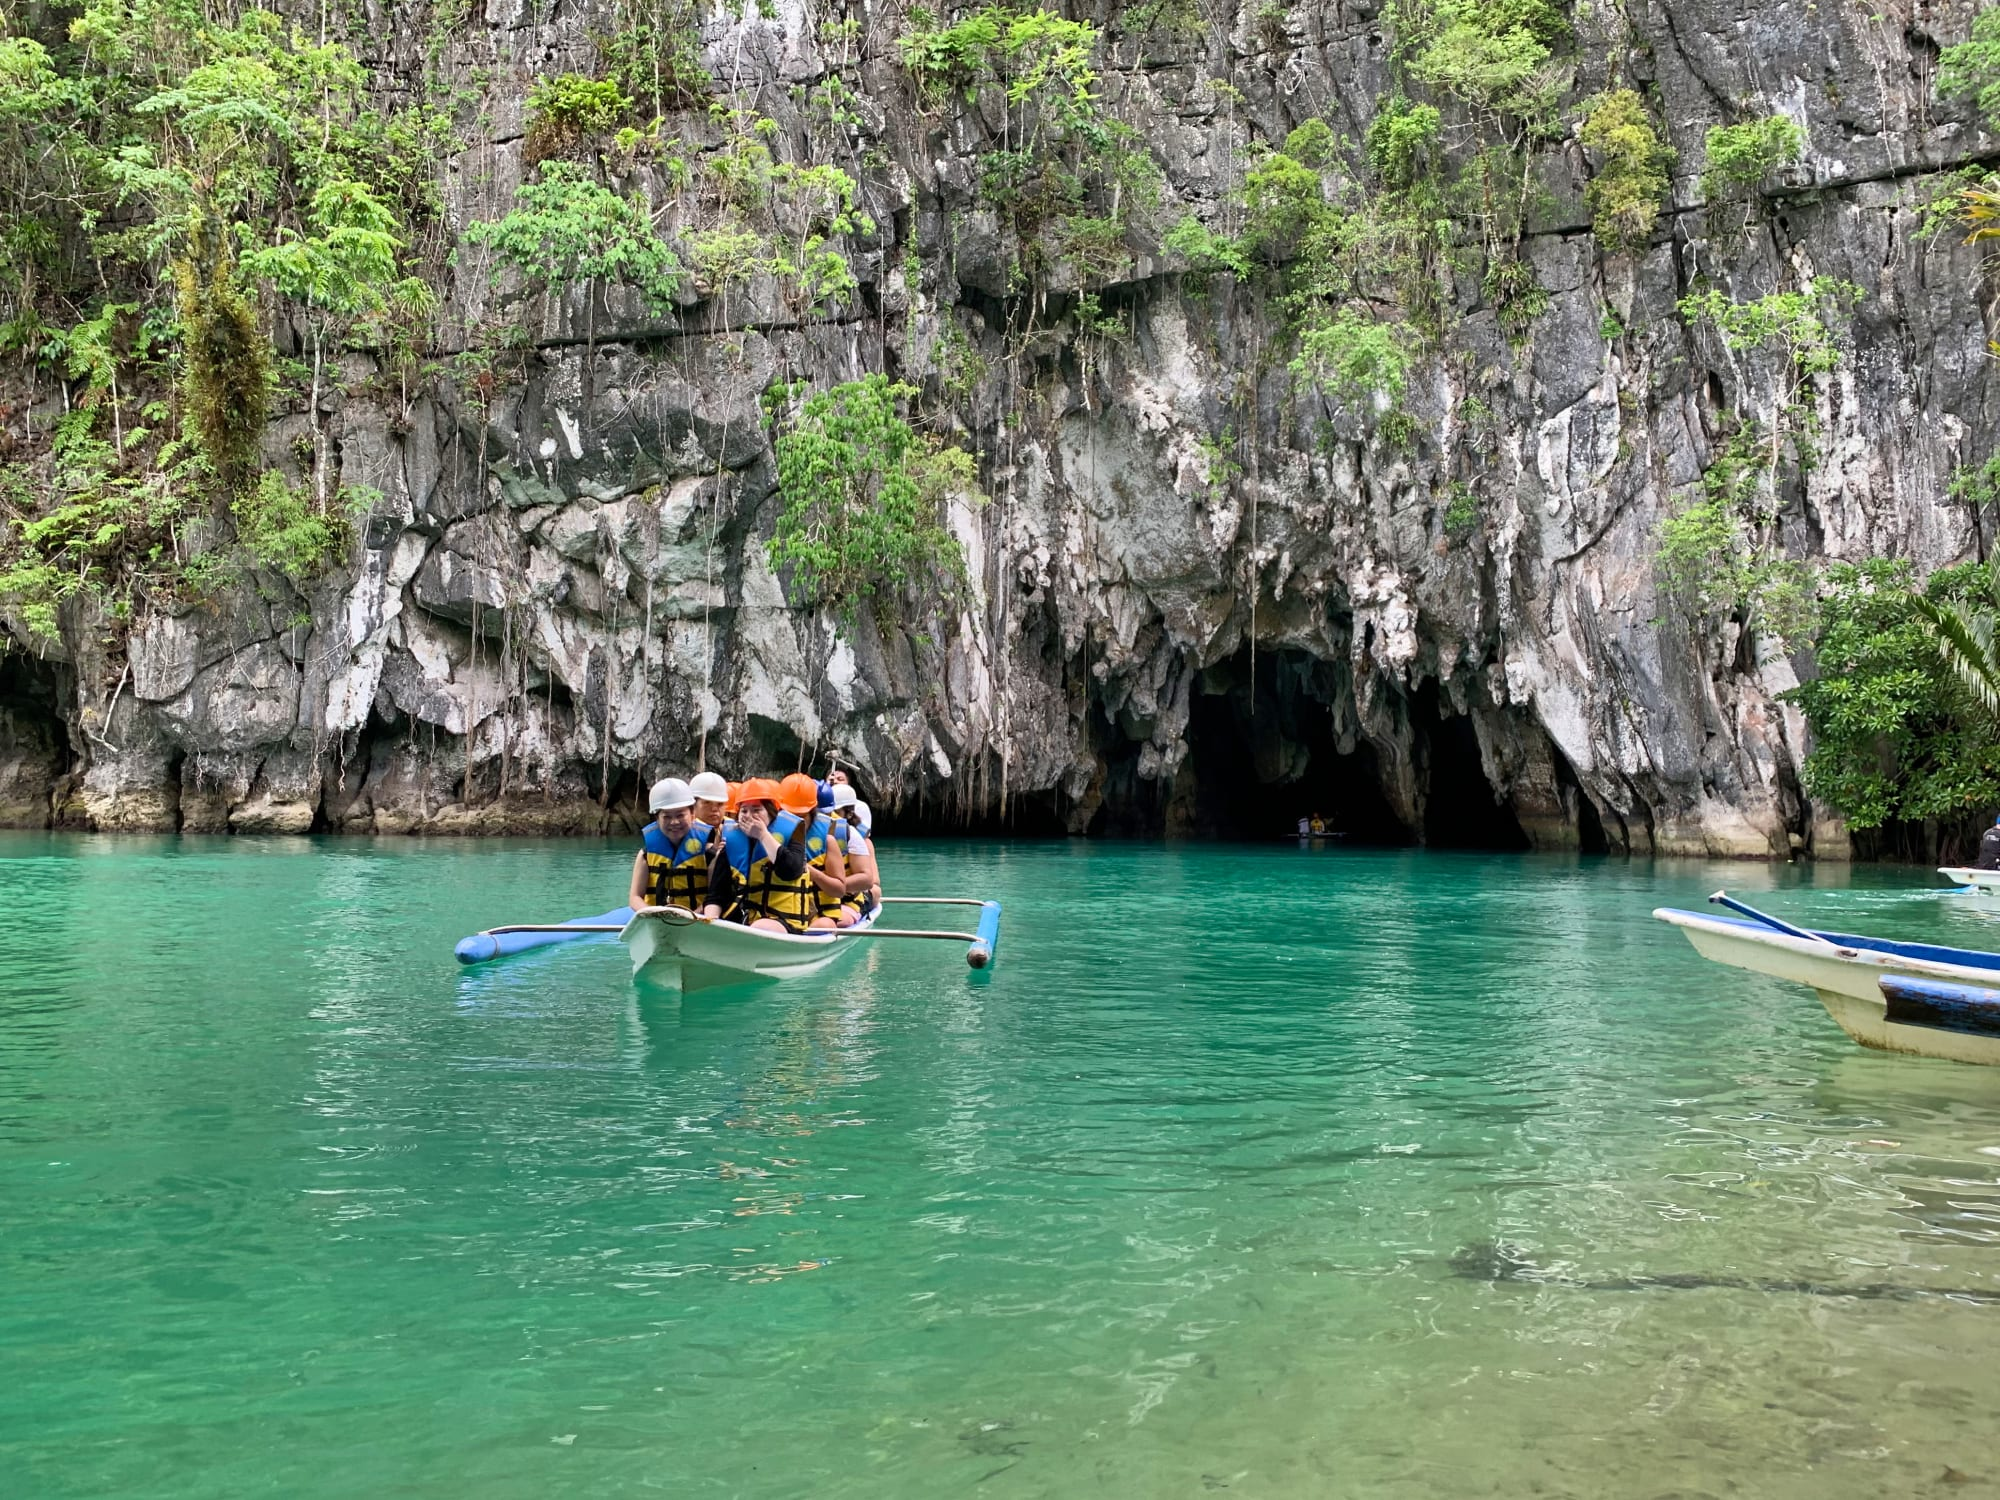 Puerto Pricensa Palawan to reopen more attractions